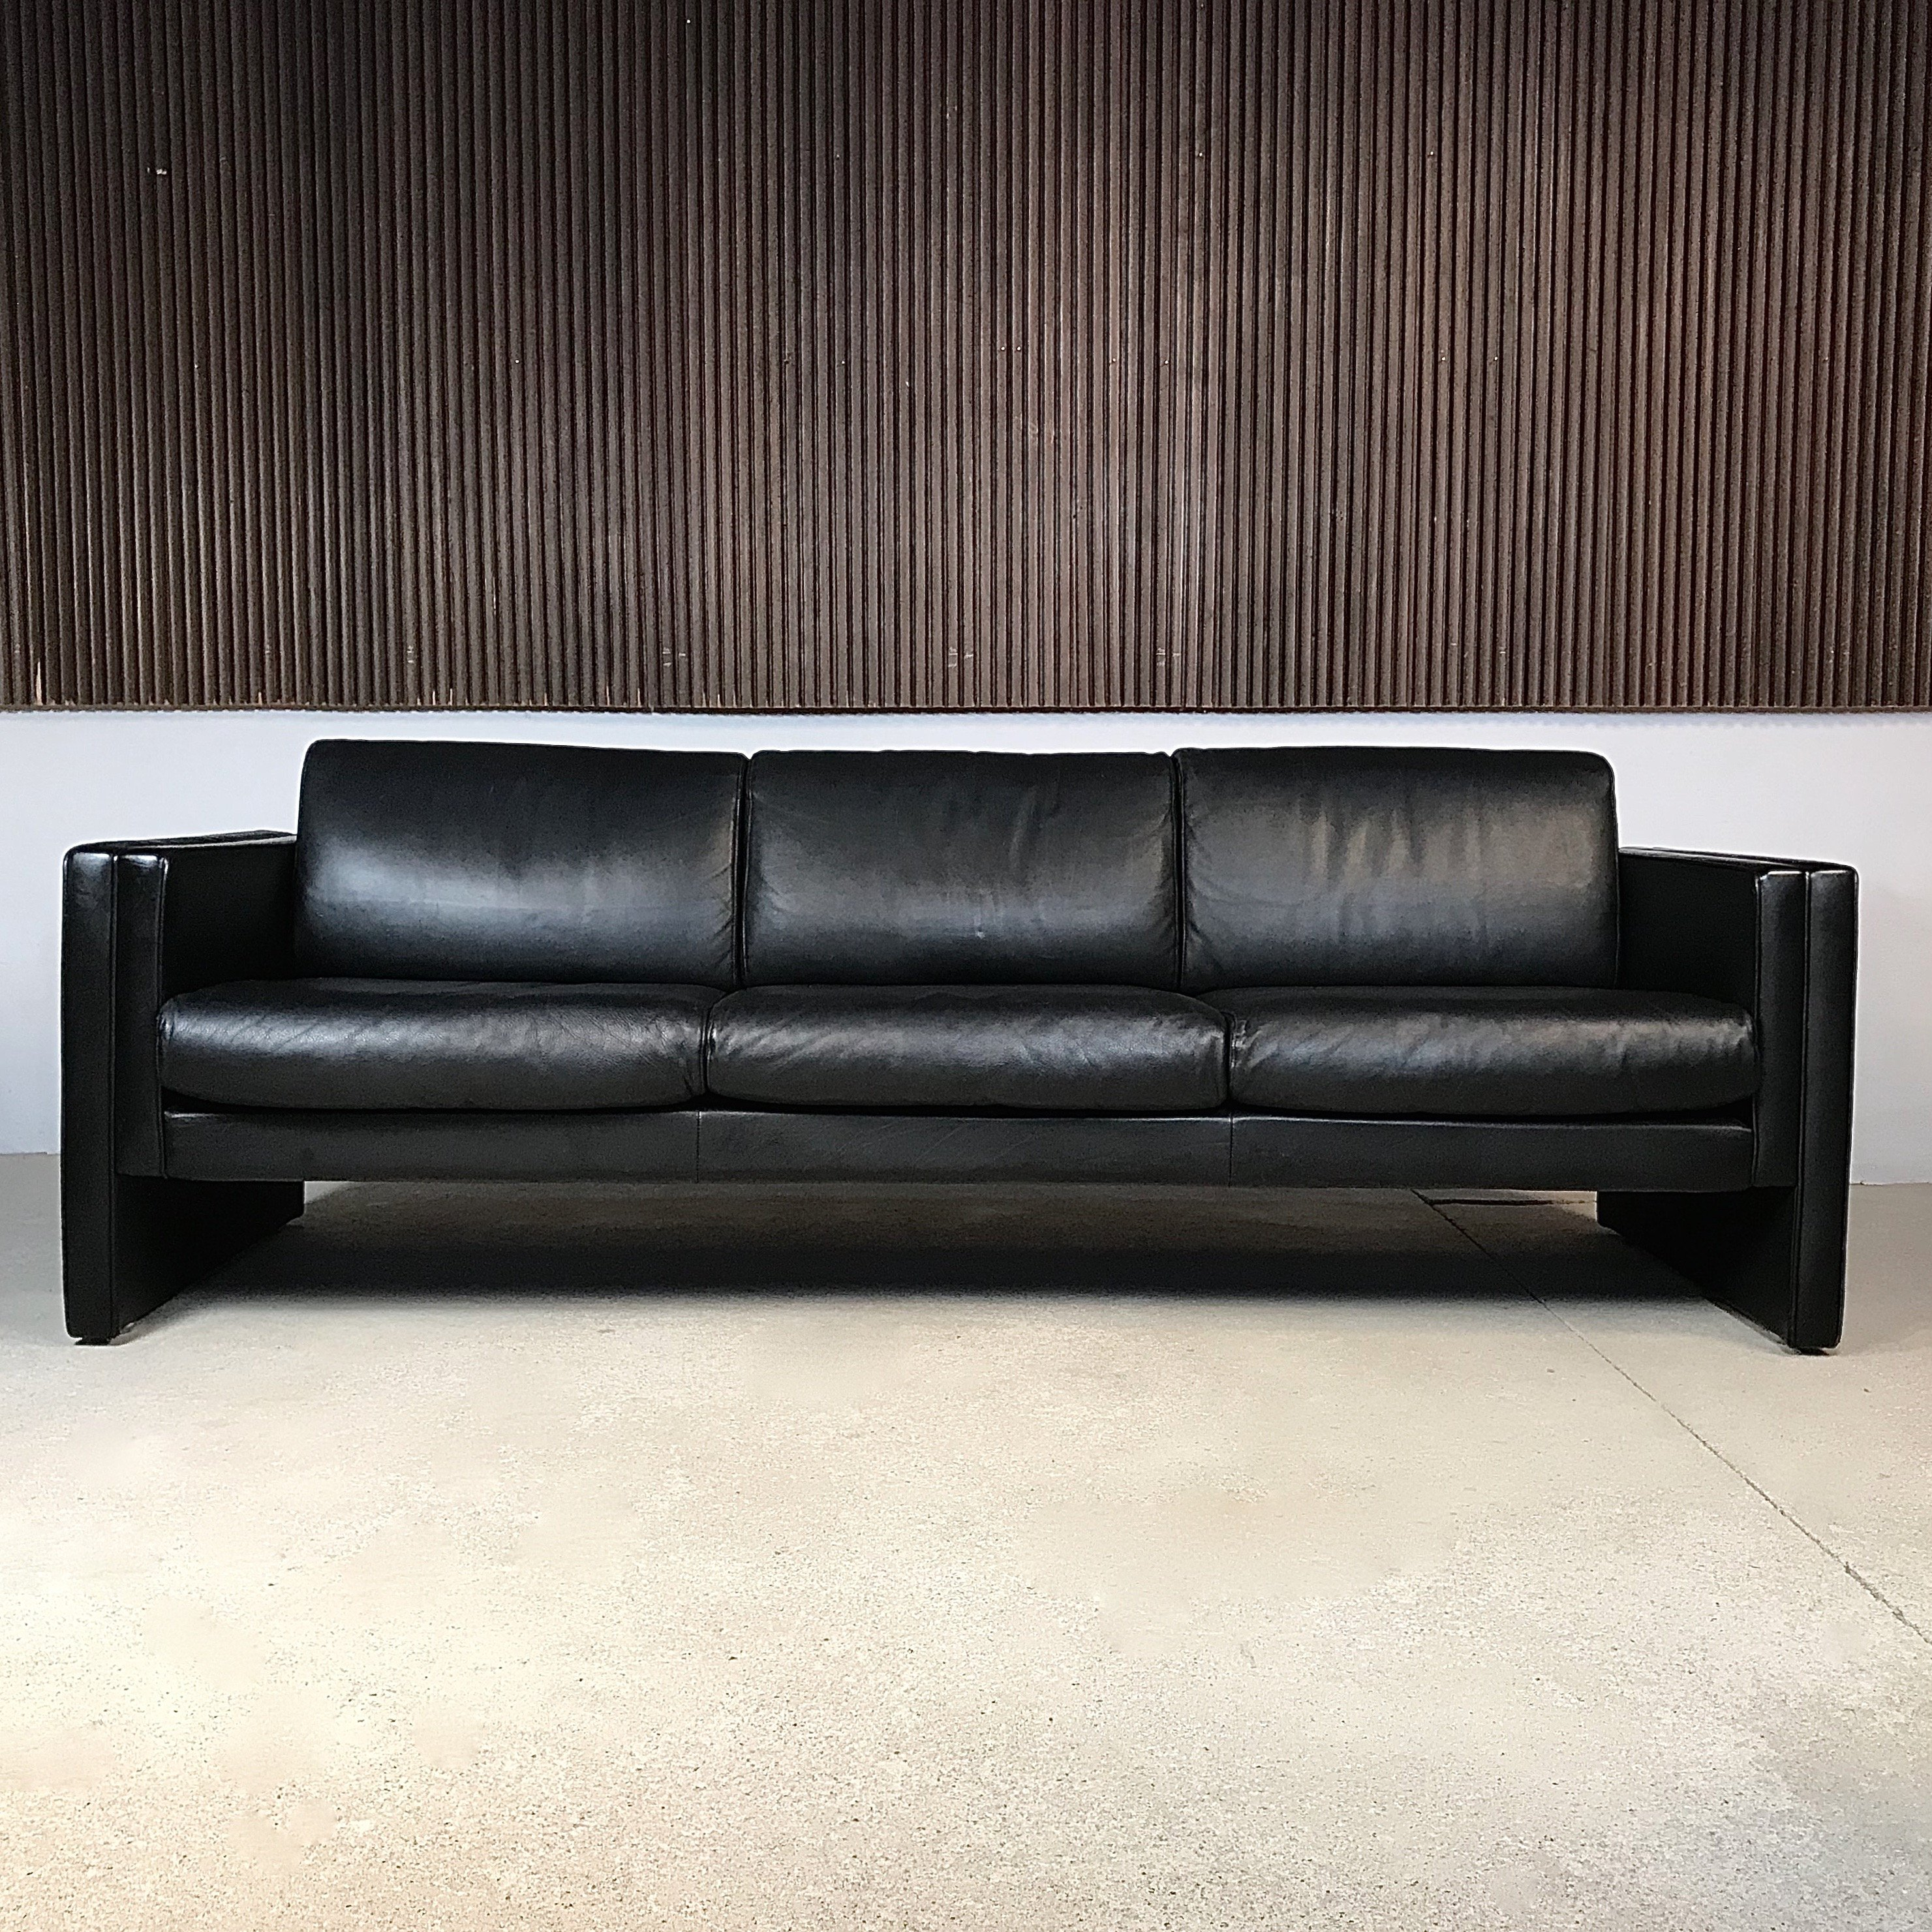 Walter Knoll Sofa Model Studio Black Leather Three Seater Sofa By Walter Knoll